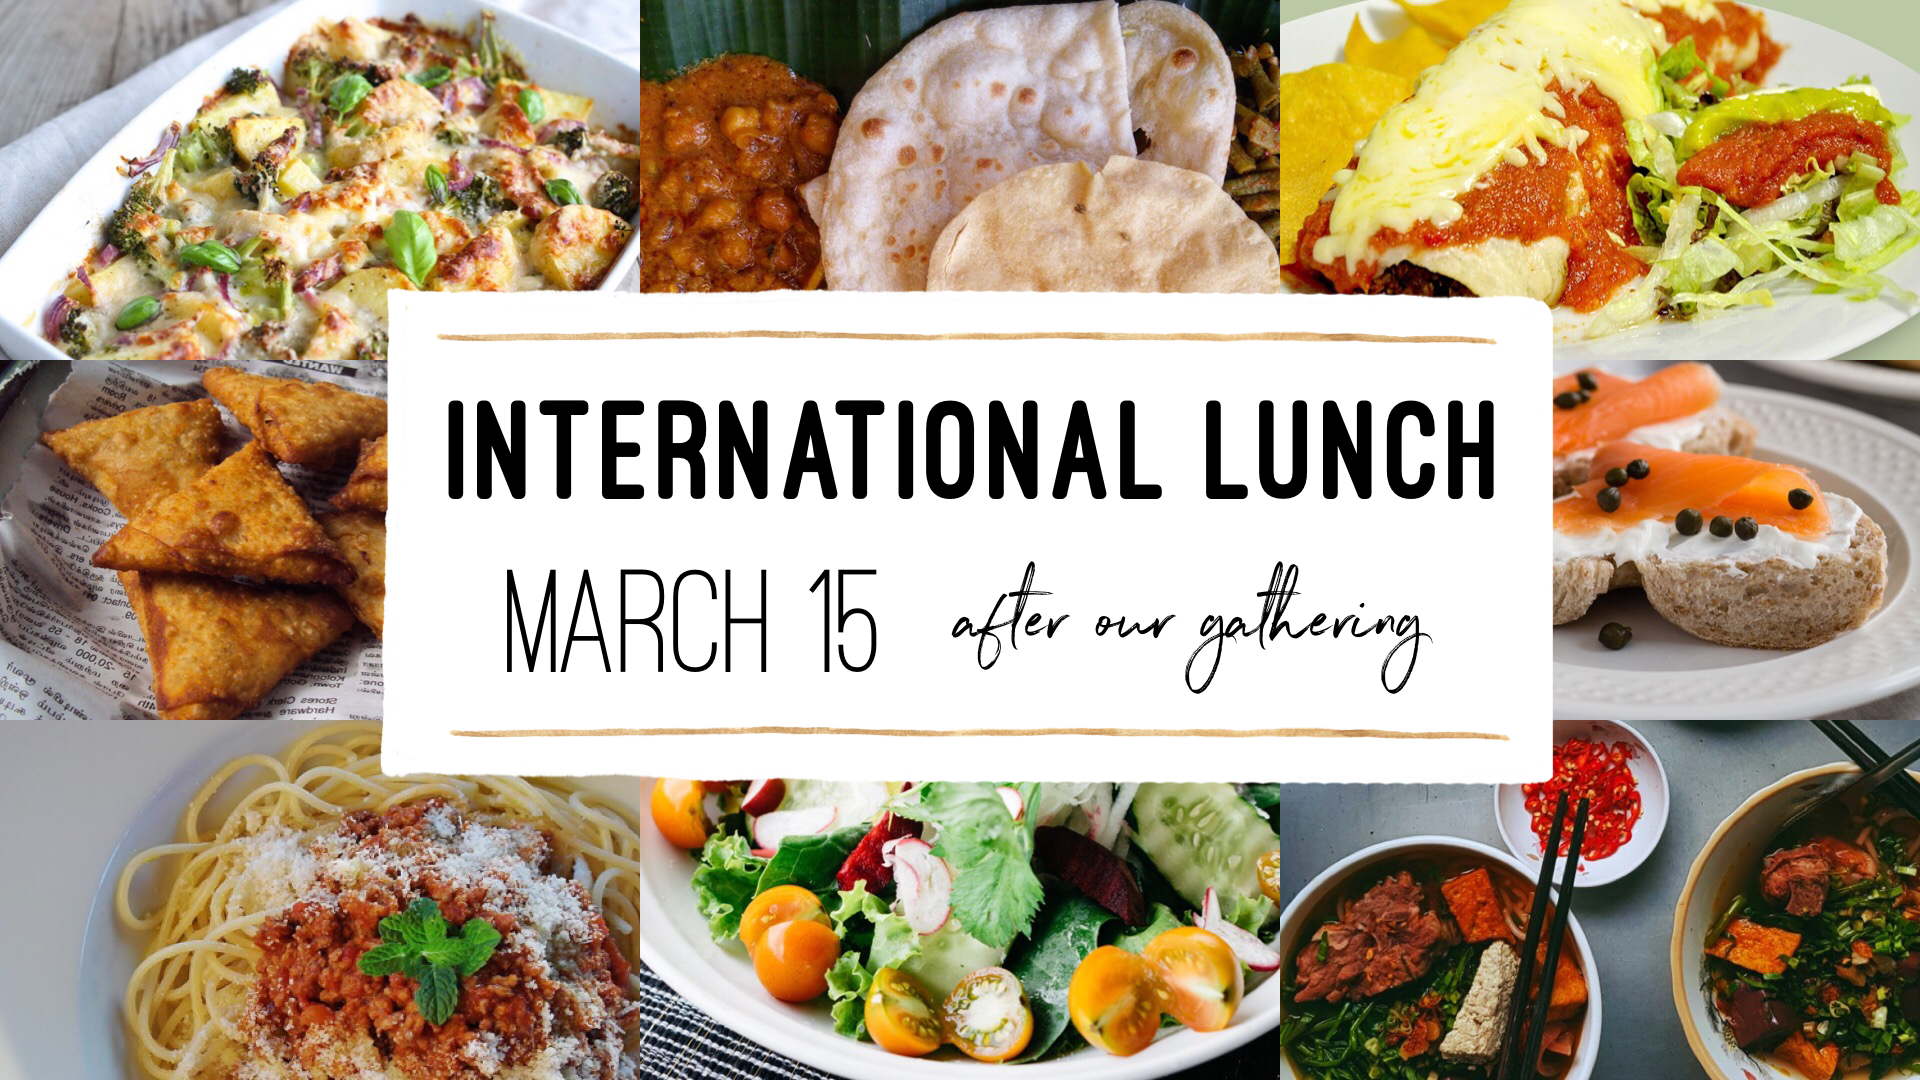 International Lunch March 2020 GS image